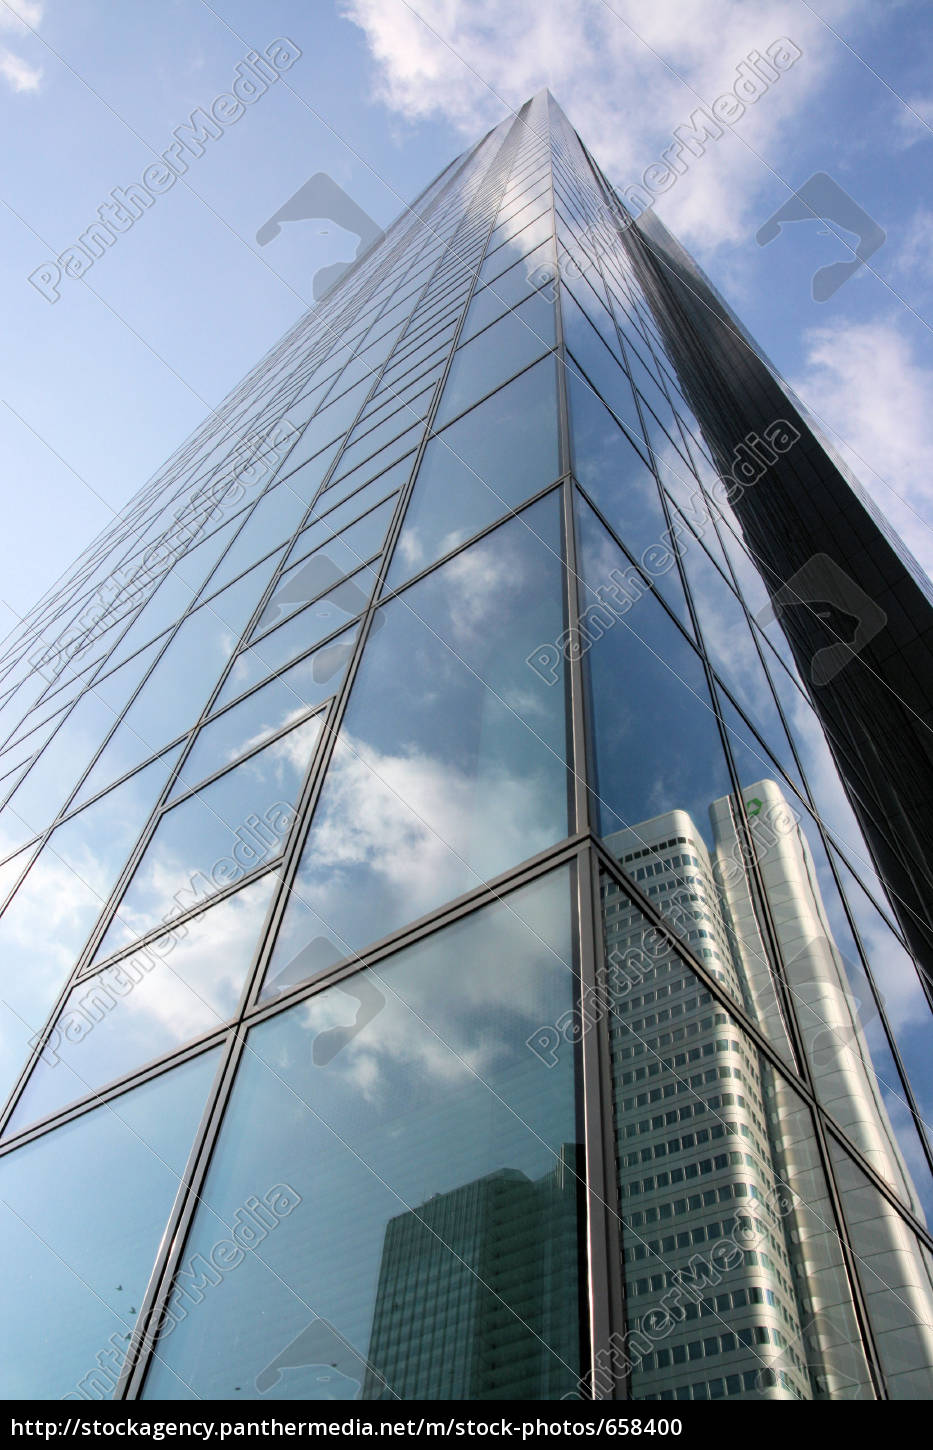 silver, tower, mirrored - 658400